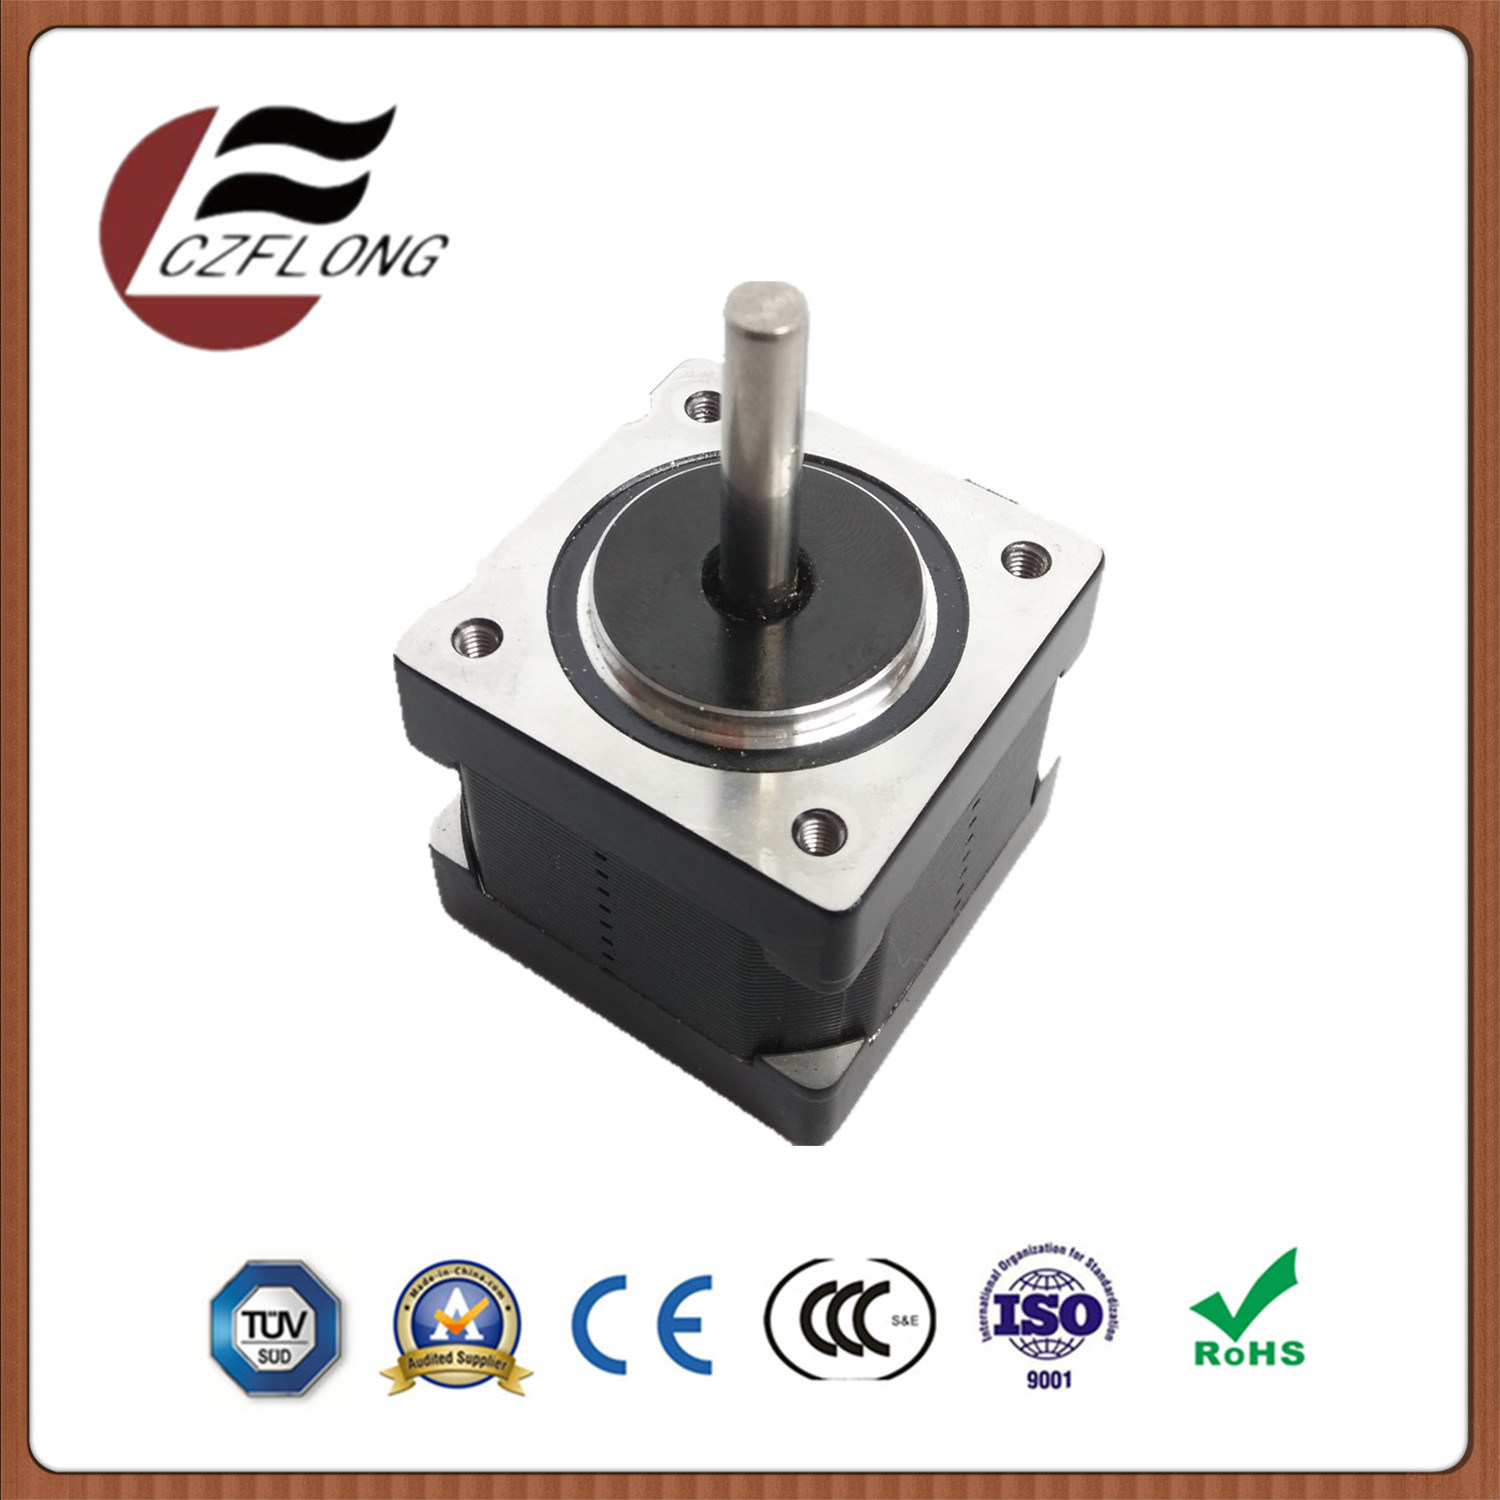 Small Noise 35mm Stepper Motor for CNC Automation Equipment